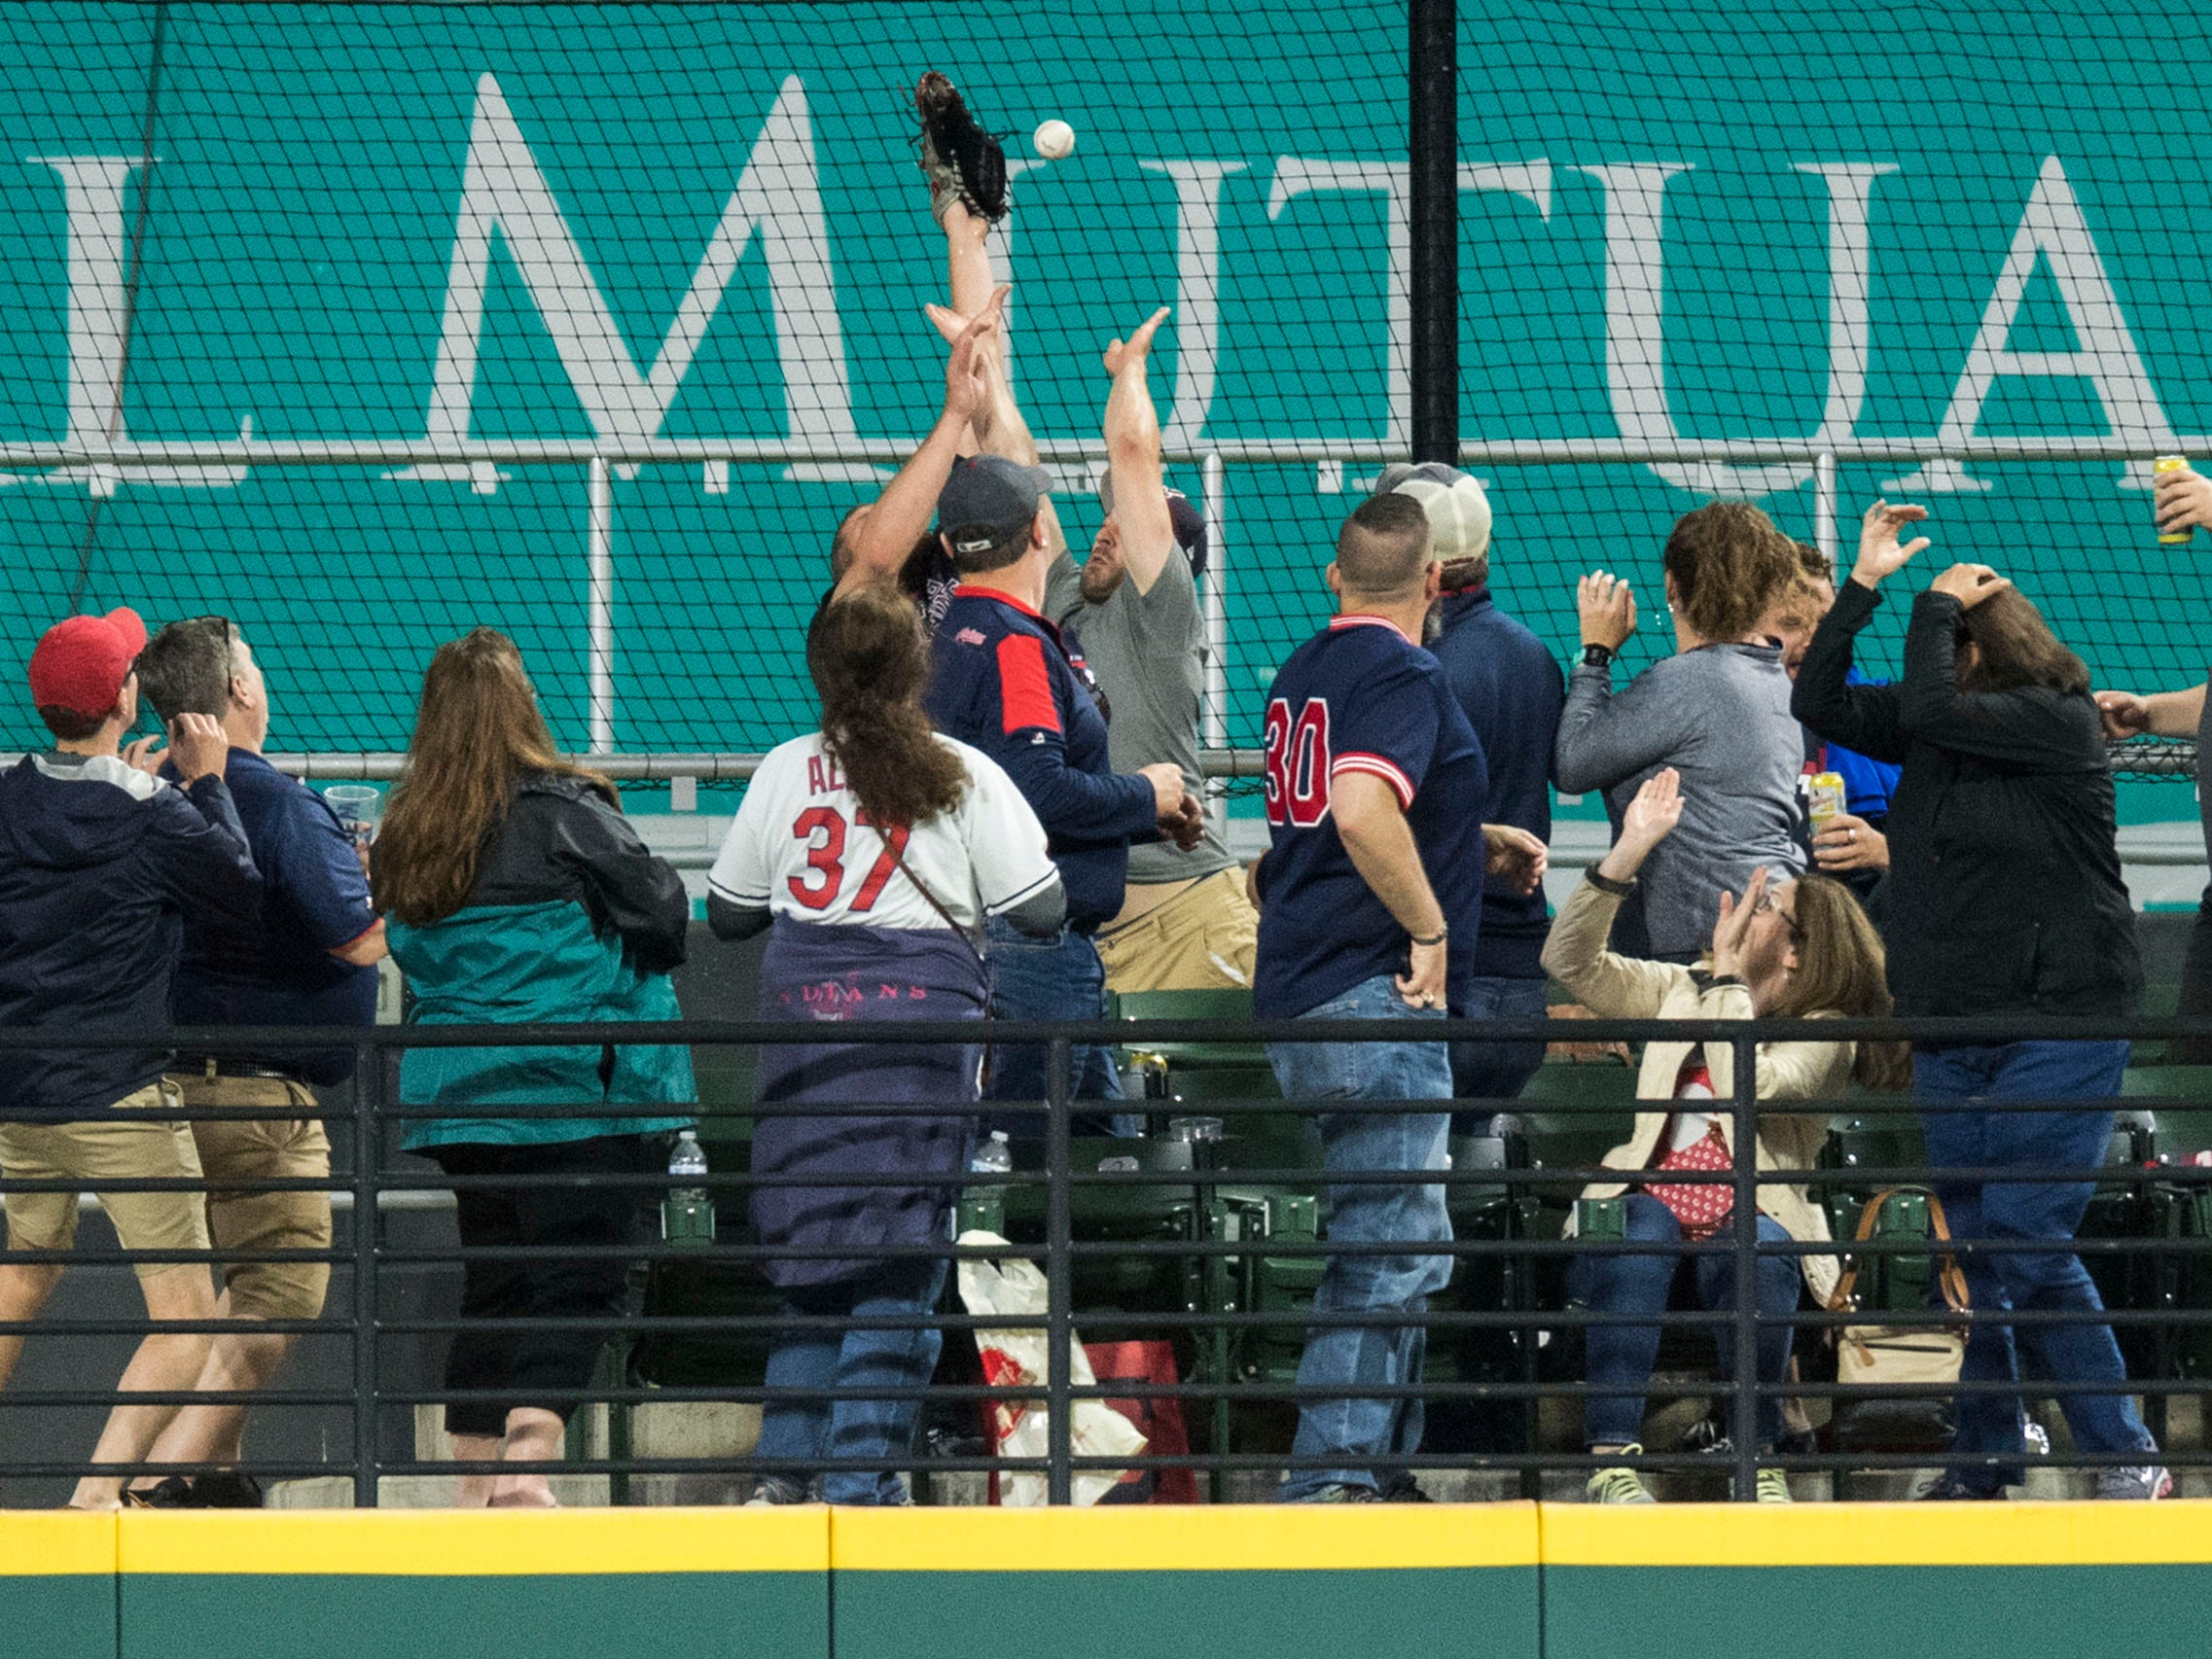 June 22 in Cleveland: Indians 10, Tigers 0. Center fielder Leonys Martin watches as fans try to catch a grand slam hit by Indians first baseman Yonder Alonso in the seventh inning at Progressive Field.